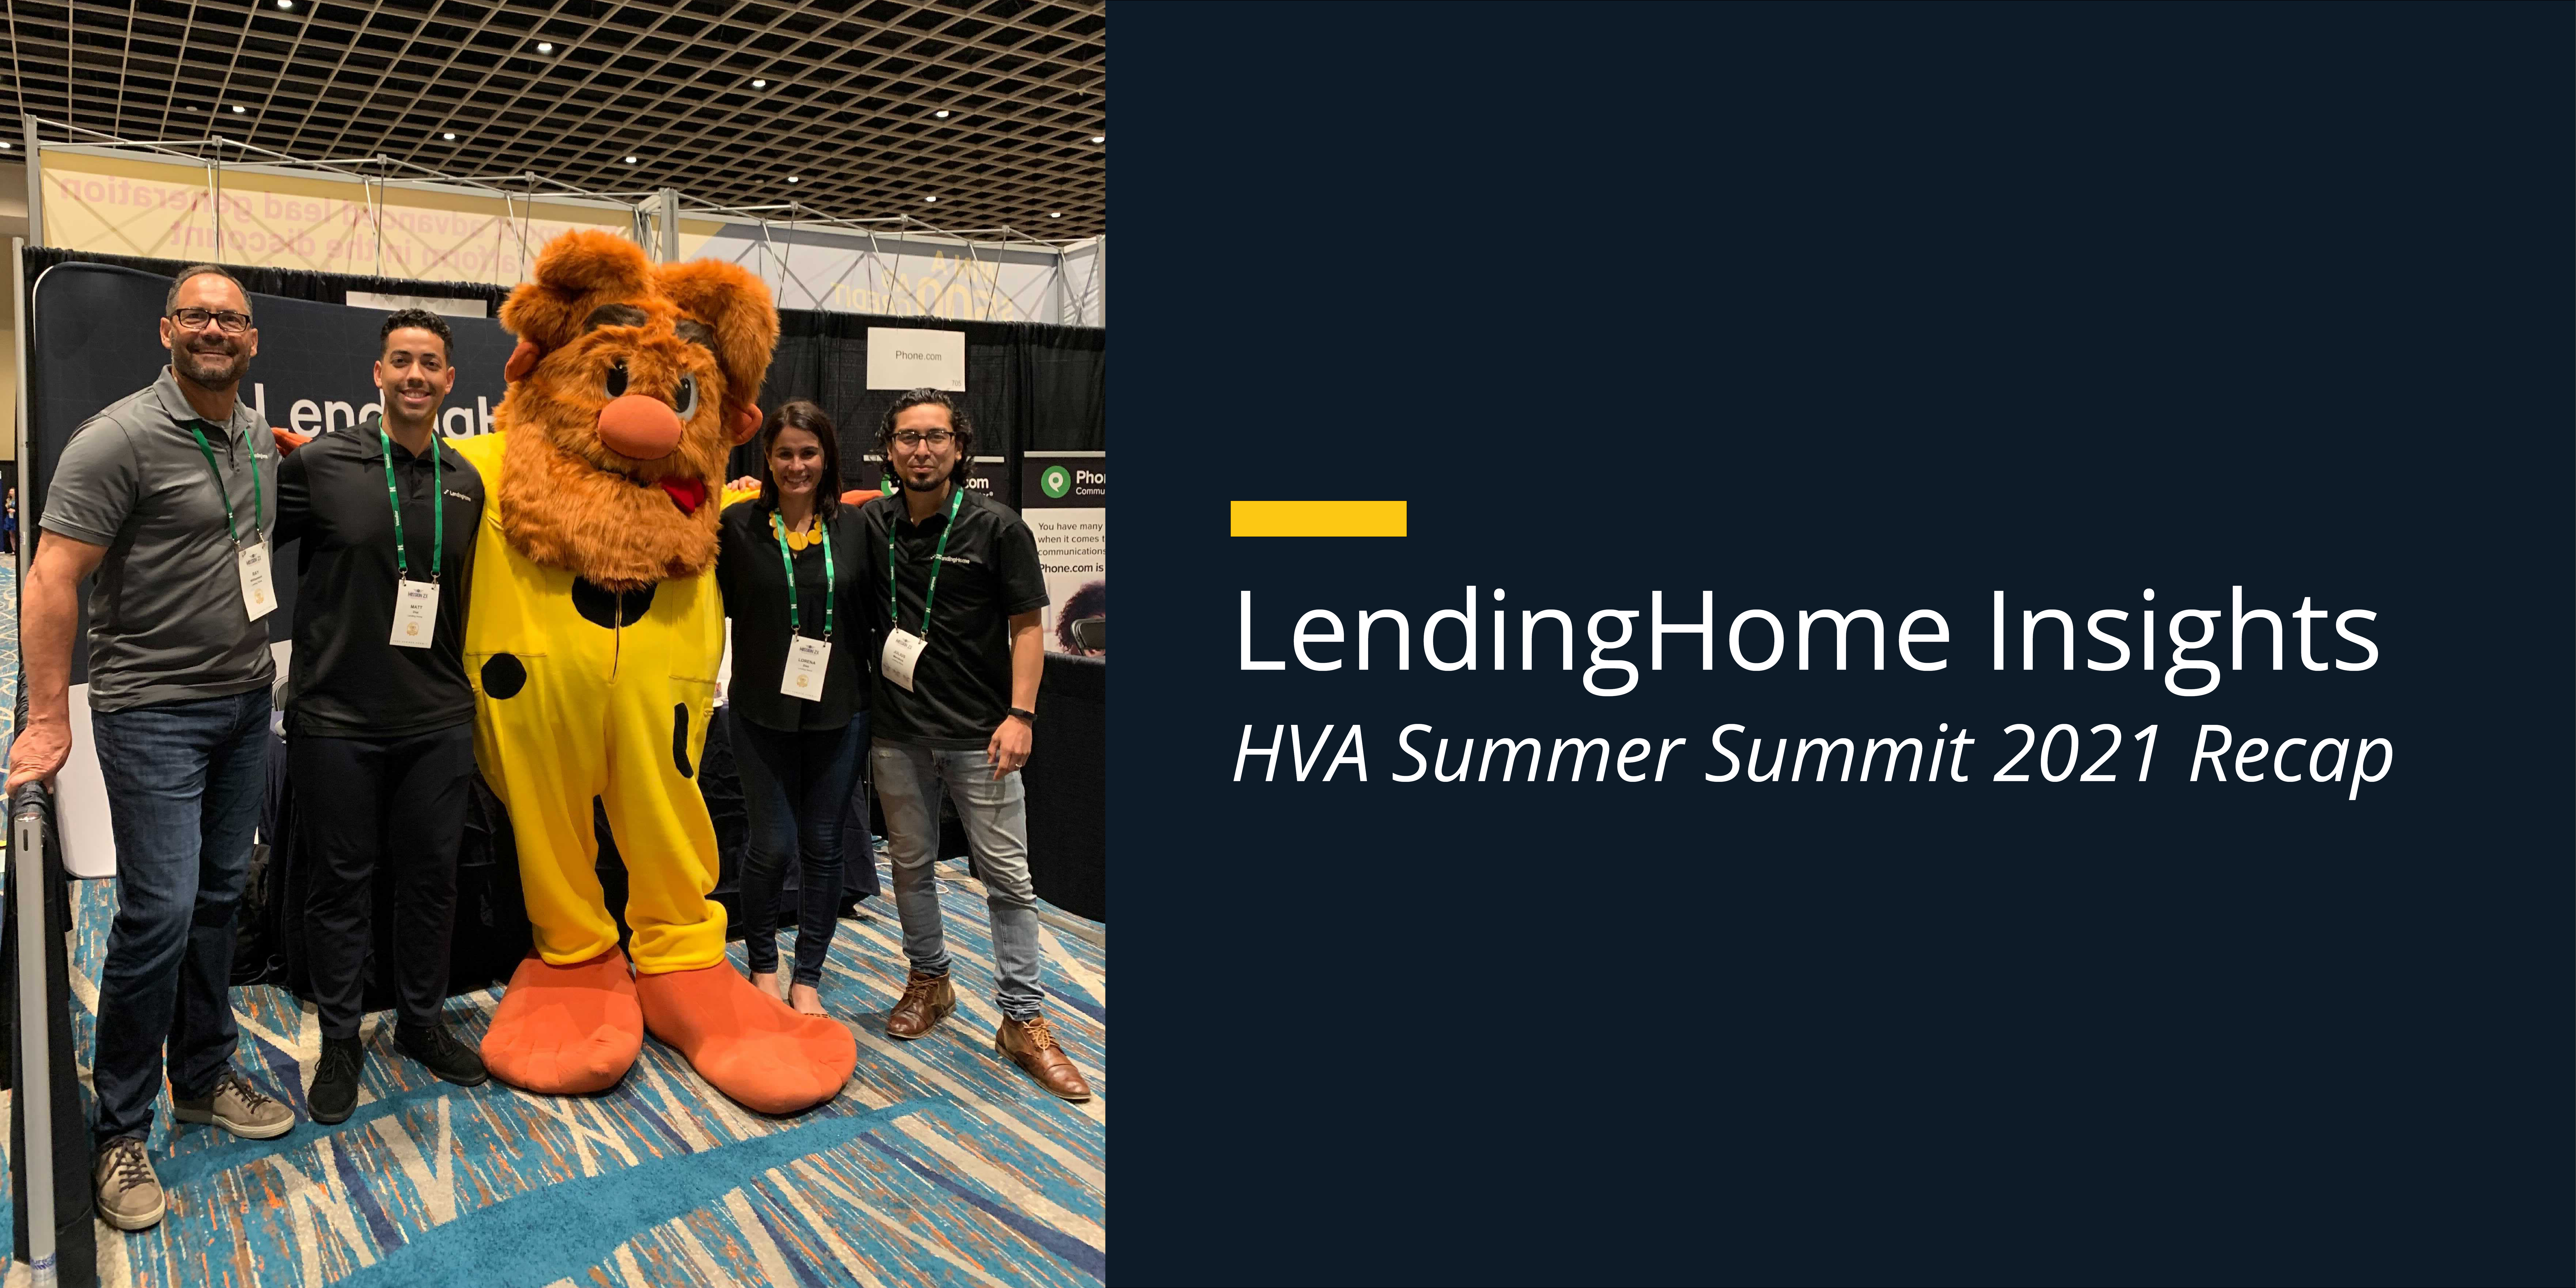 A LendingHome branded banner with a picture form the HVA Summer Summit 2021 Conference.